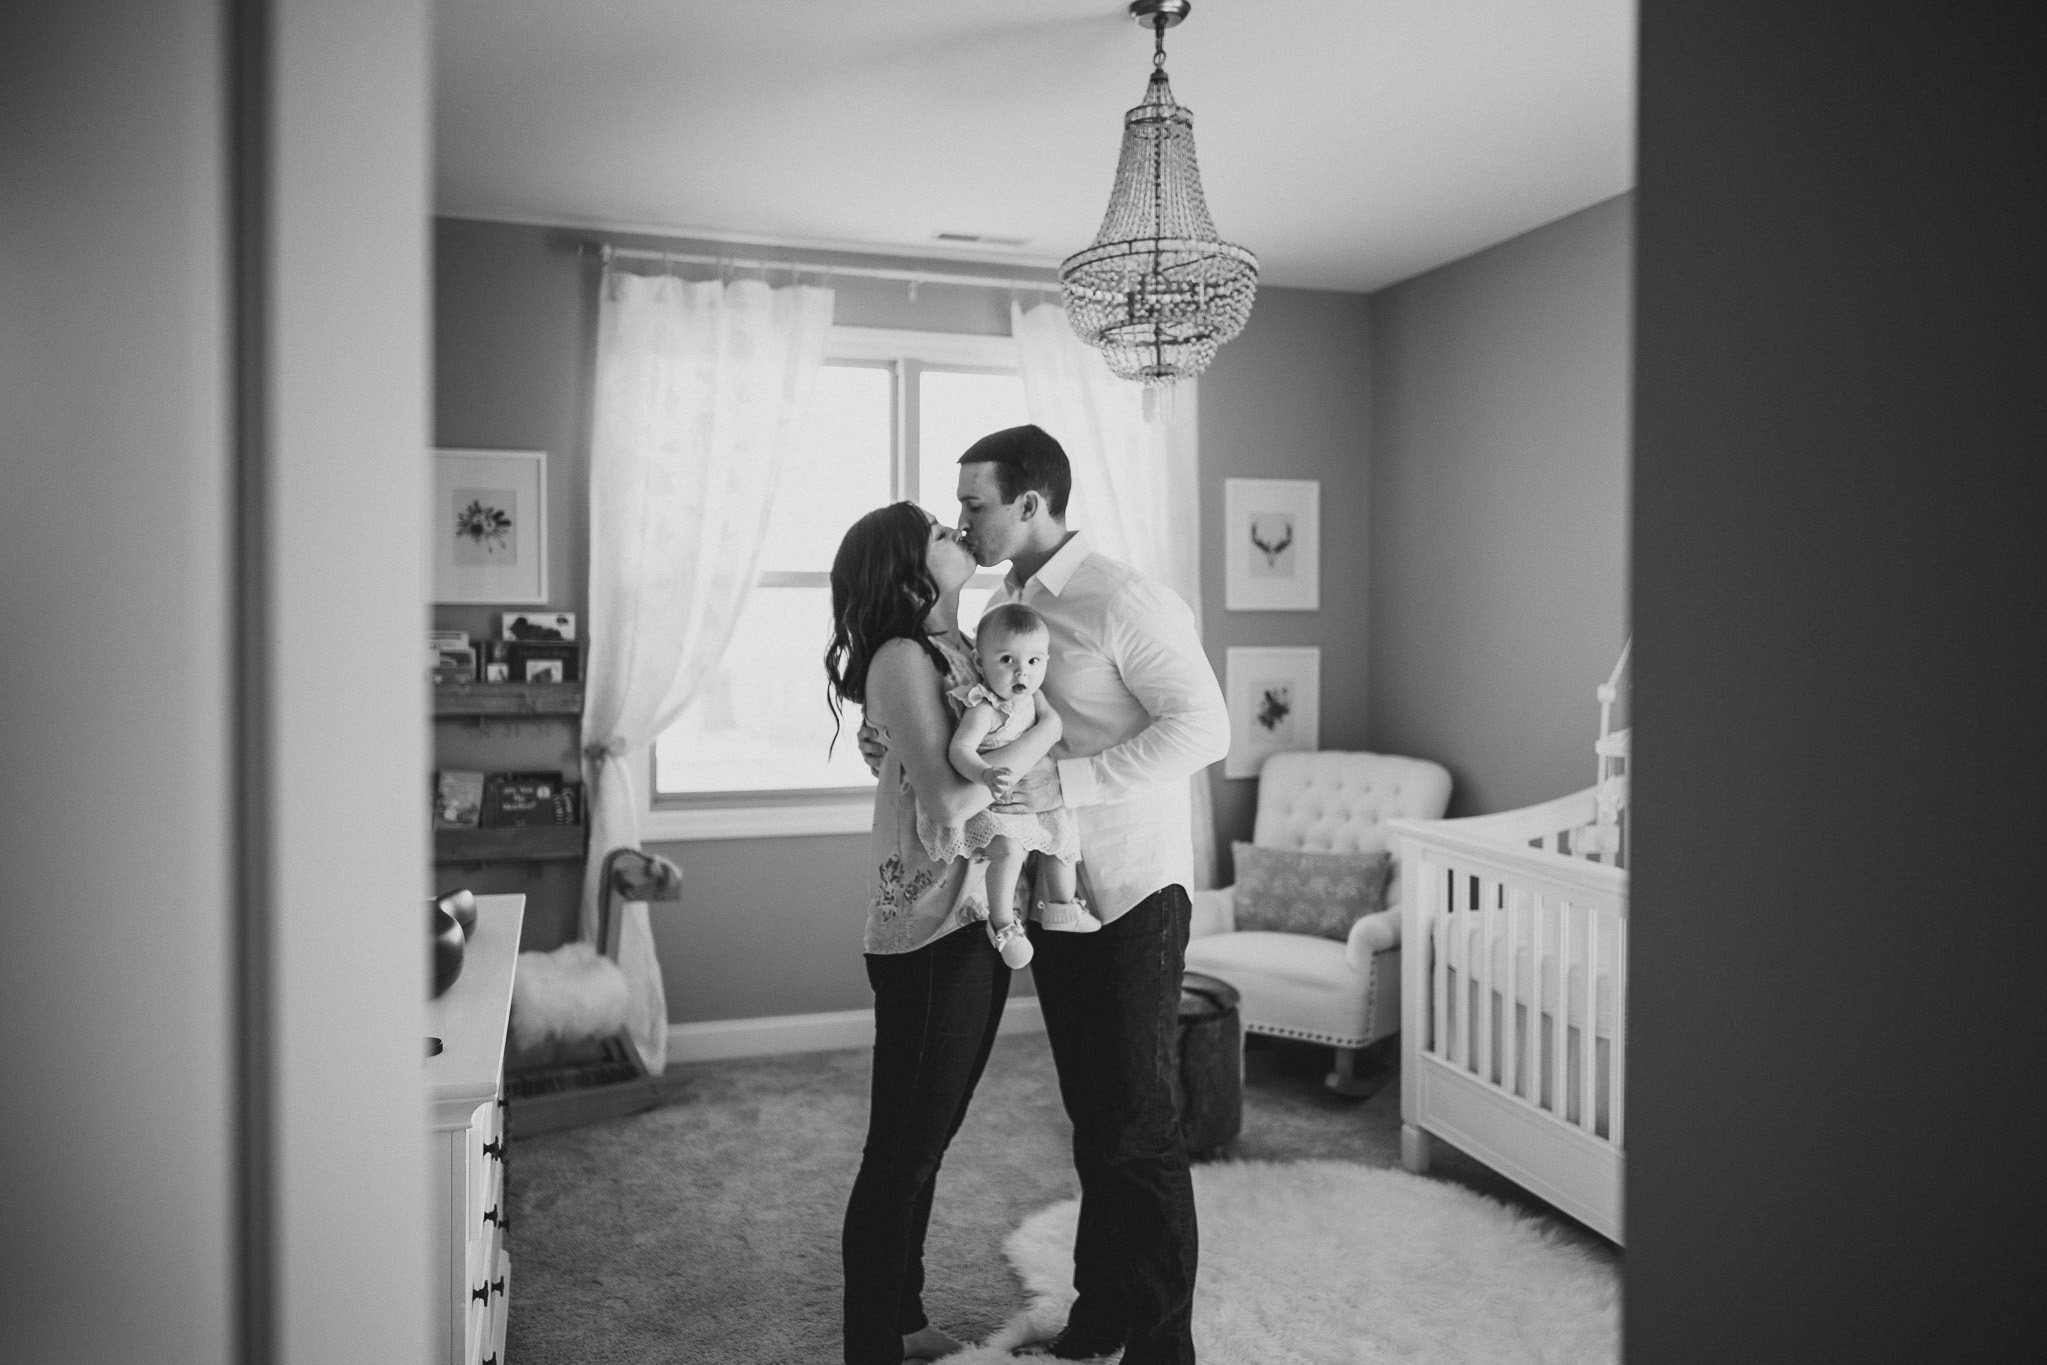 thomas wywrot photography nashville family photographer tennessee tn pictures photos newborn baby infant brentwood franklin candid lifestyle holding kissing mom dad indoor in home